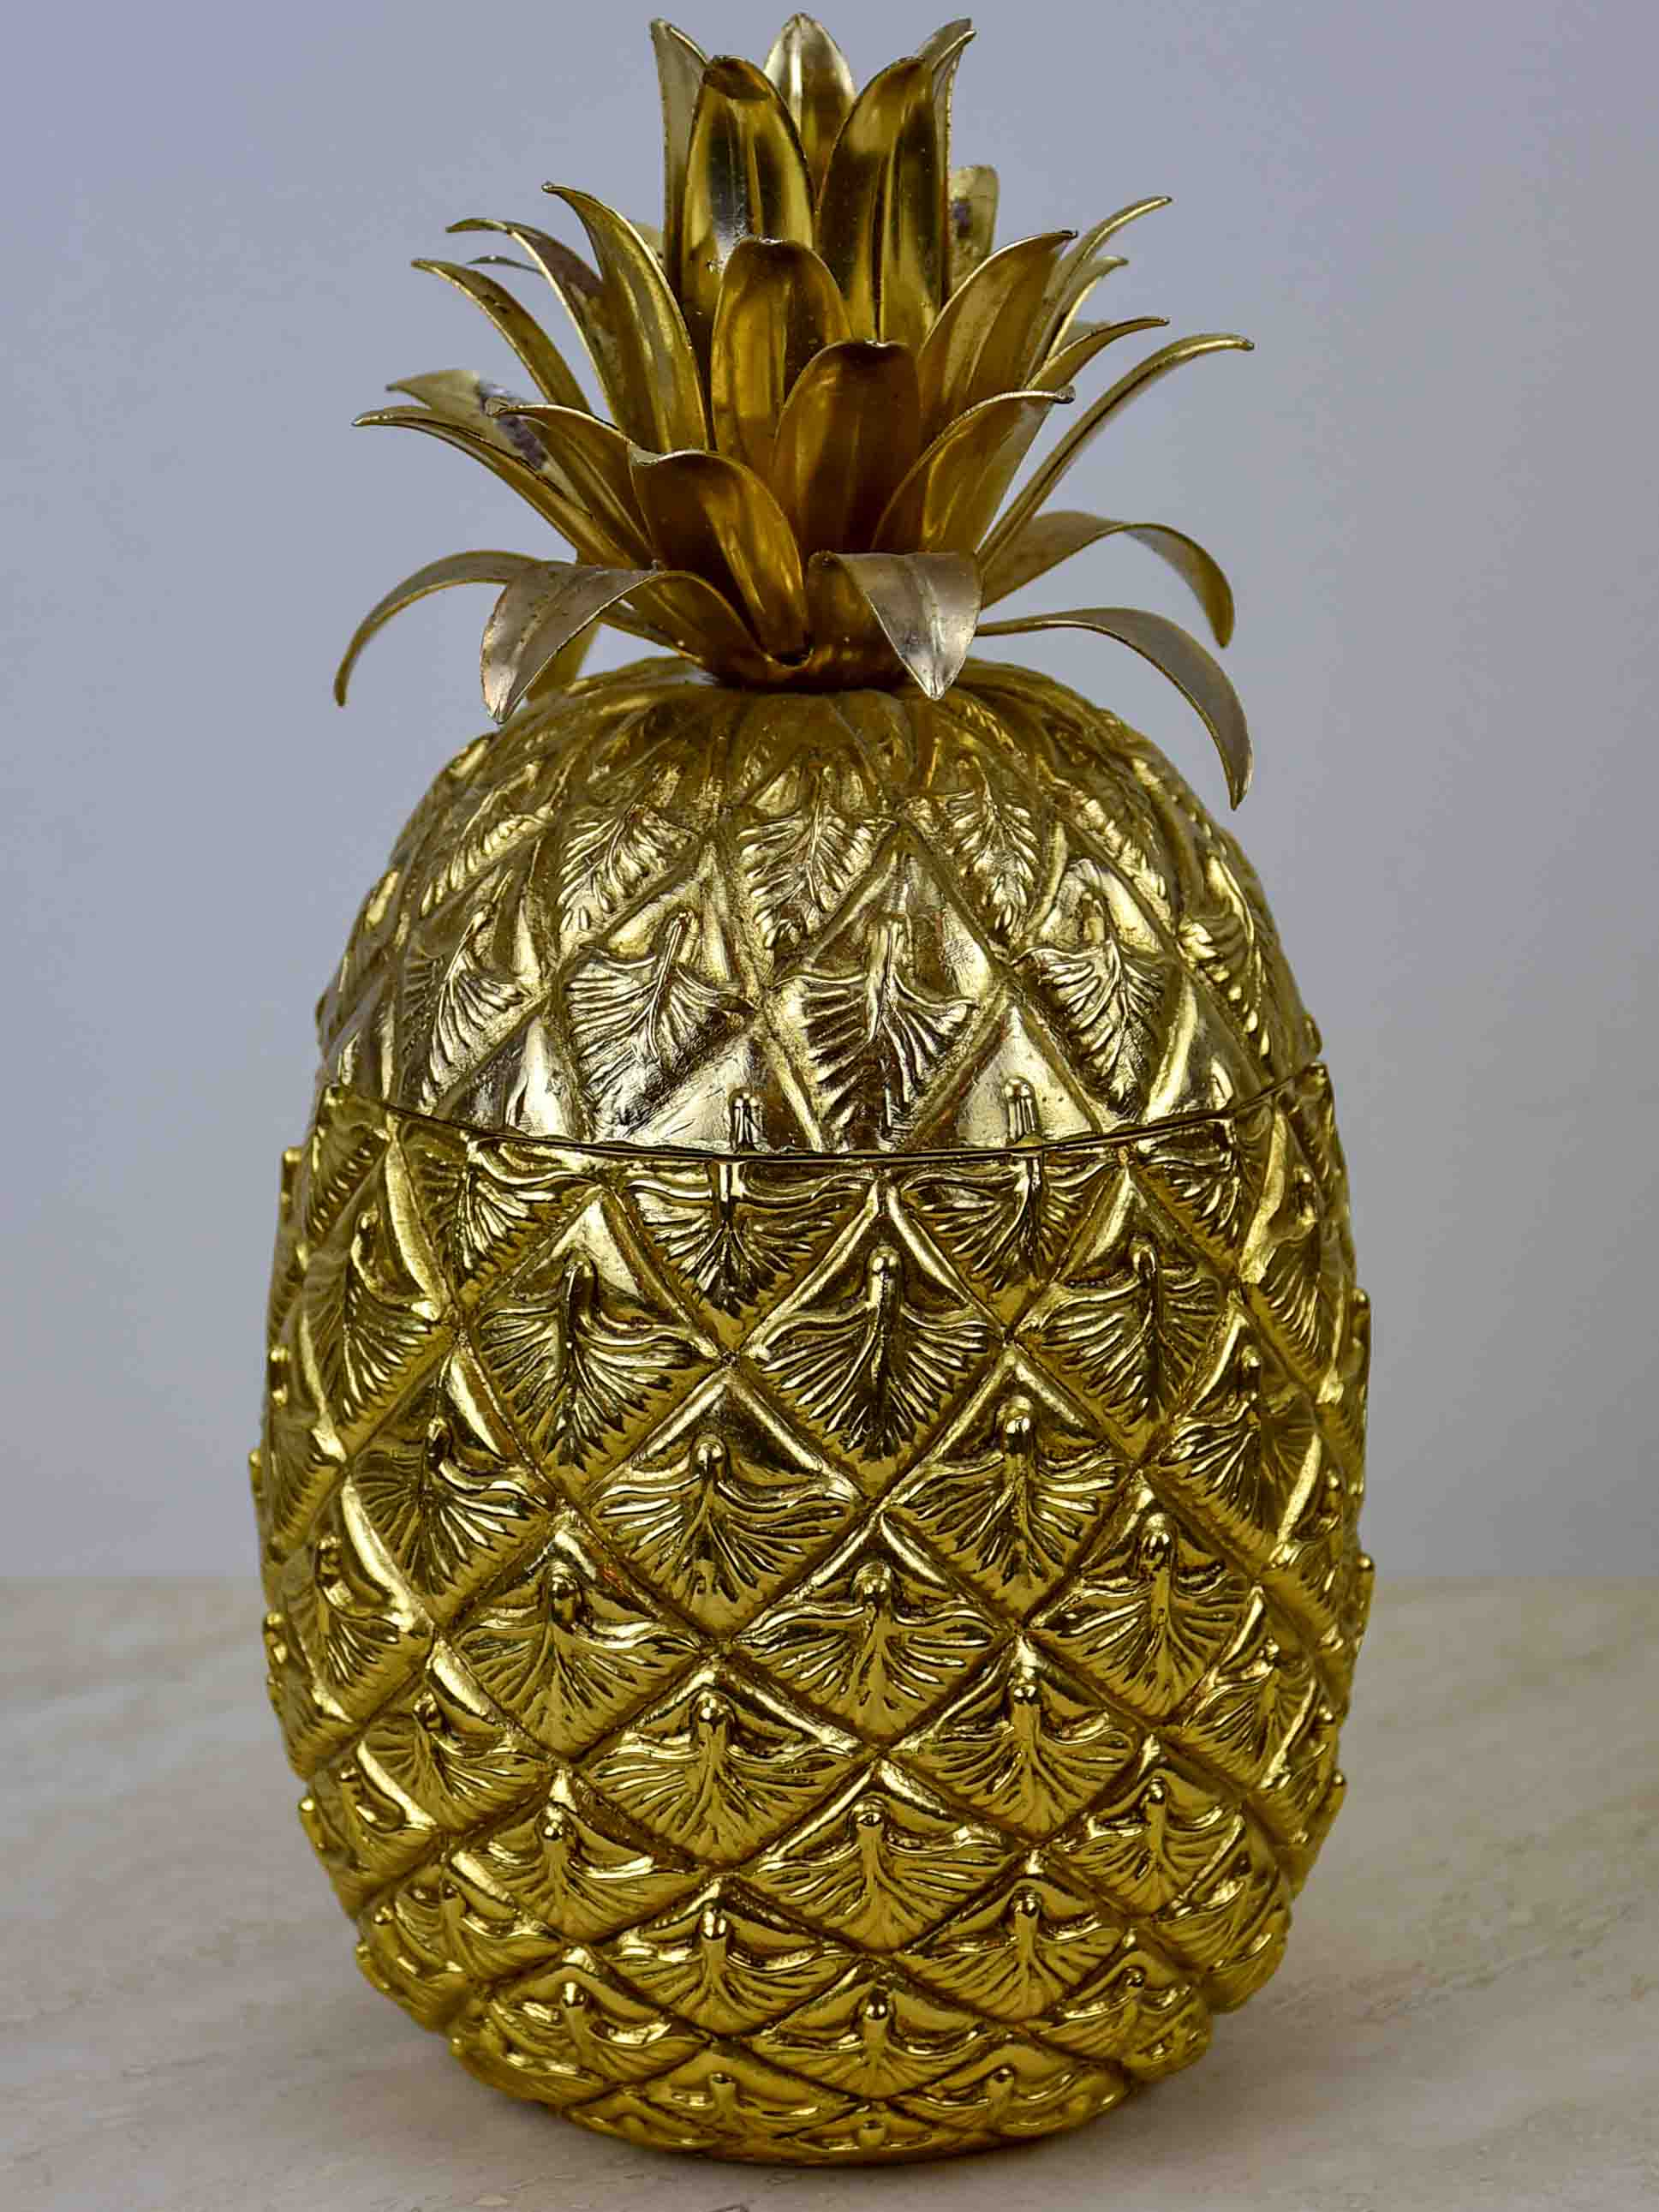 Gold Mauro Manetti pineapple ice bucket